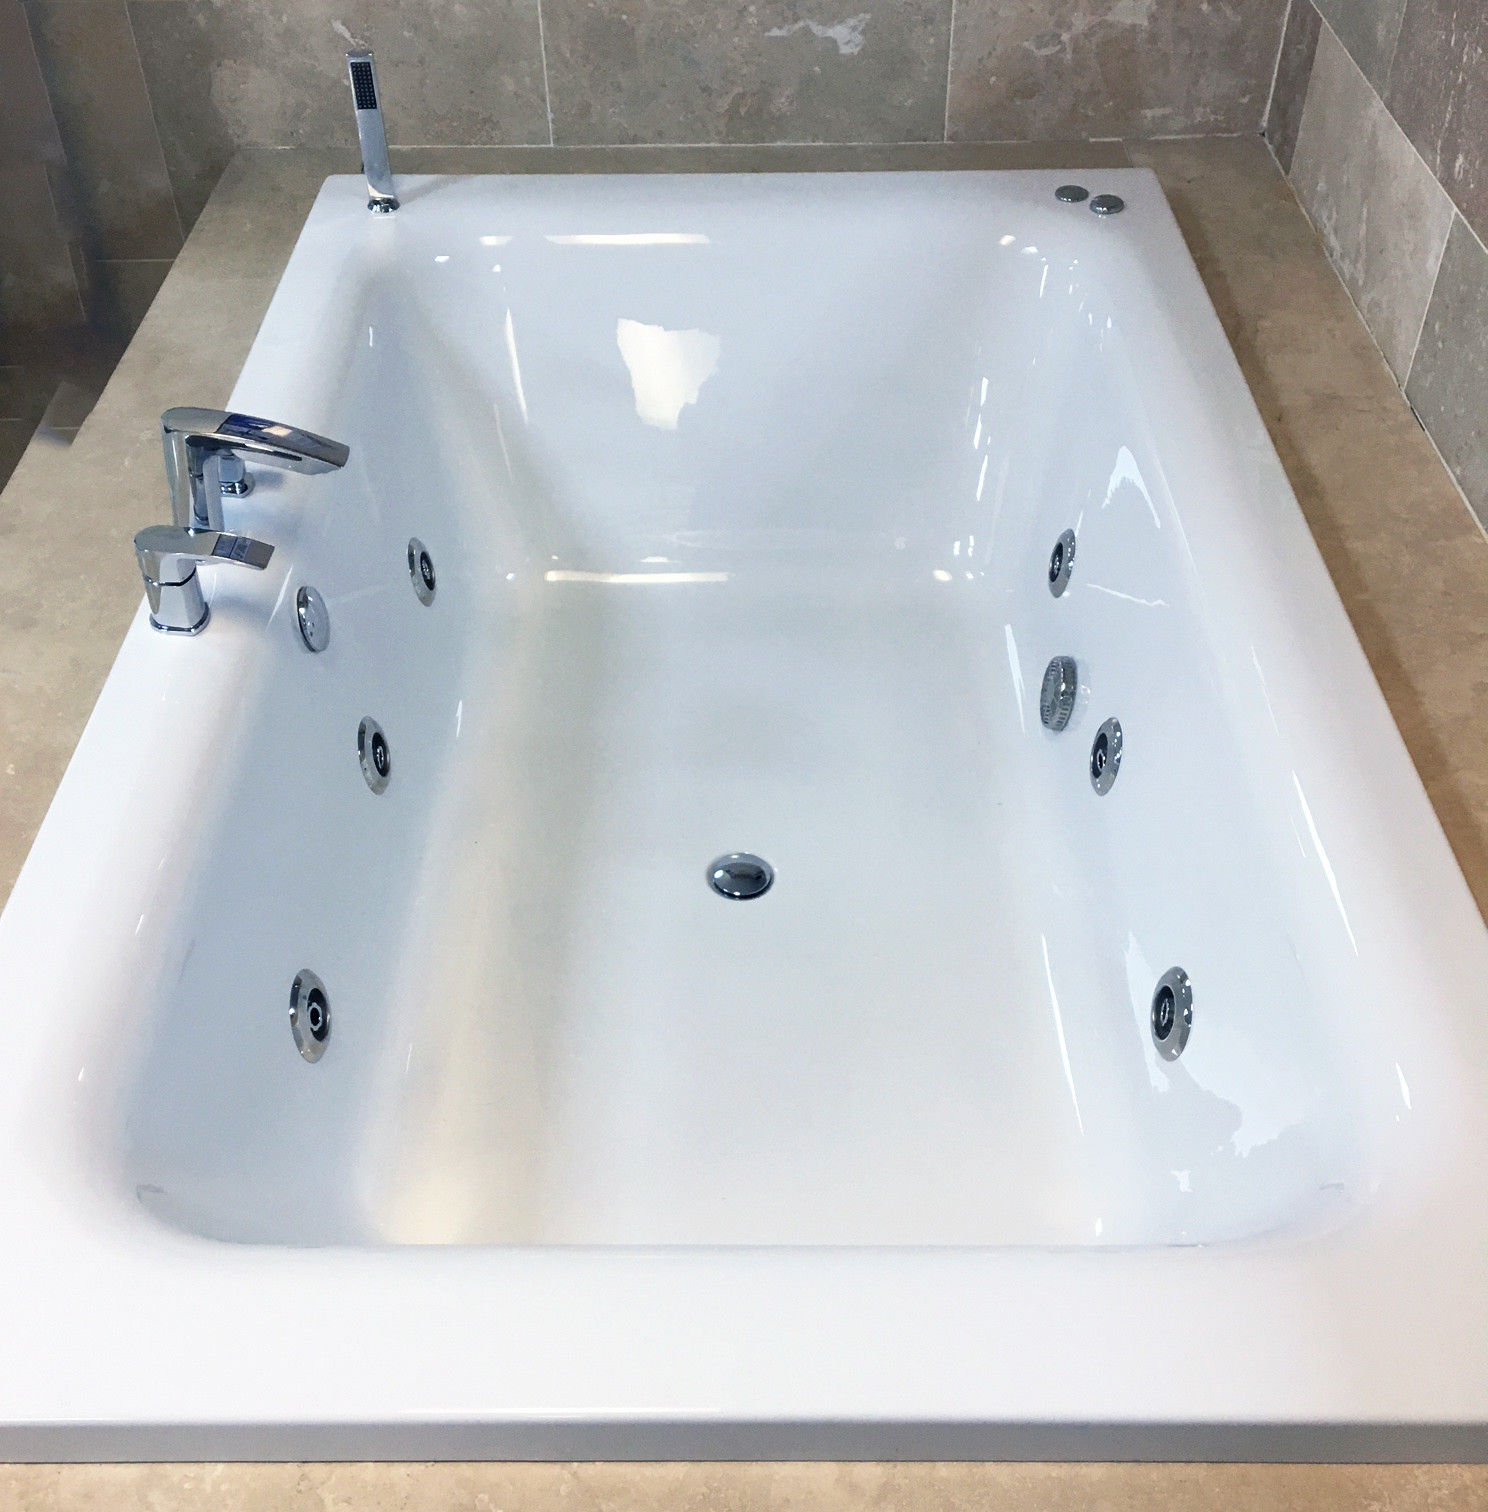 Olena 1900 x 1200mm Luxury Large Bath+ Whirlpool Jacuzzi Type Spa ...